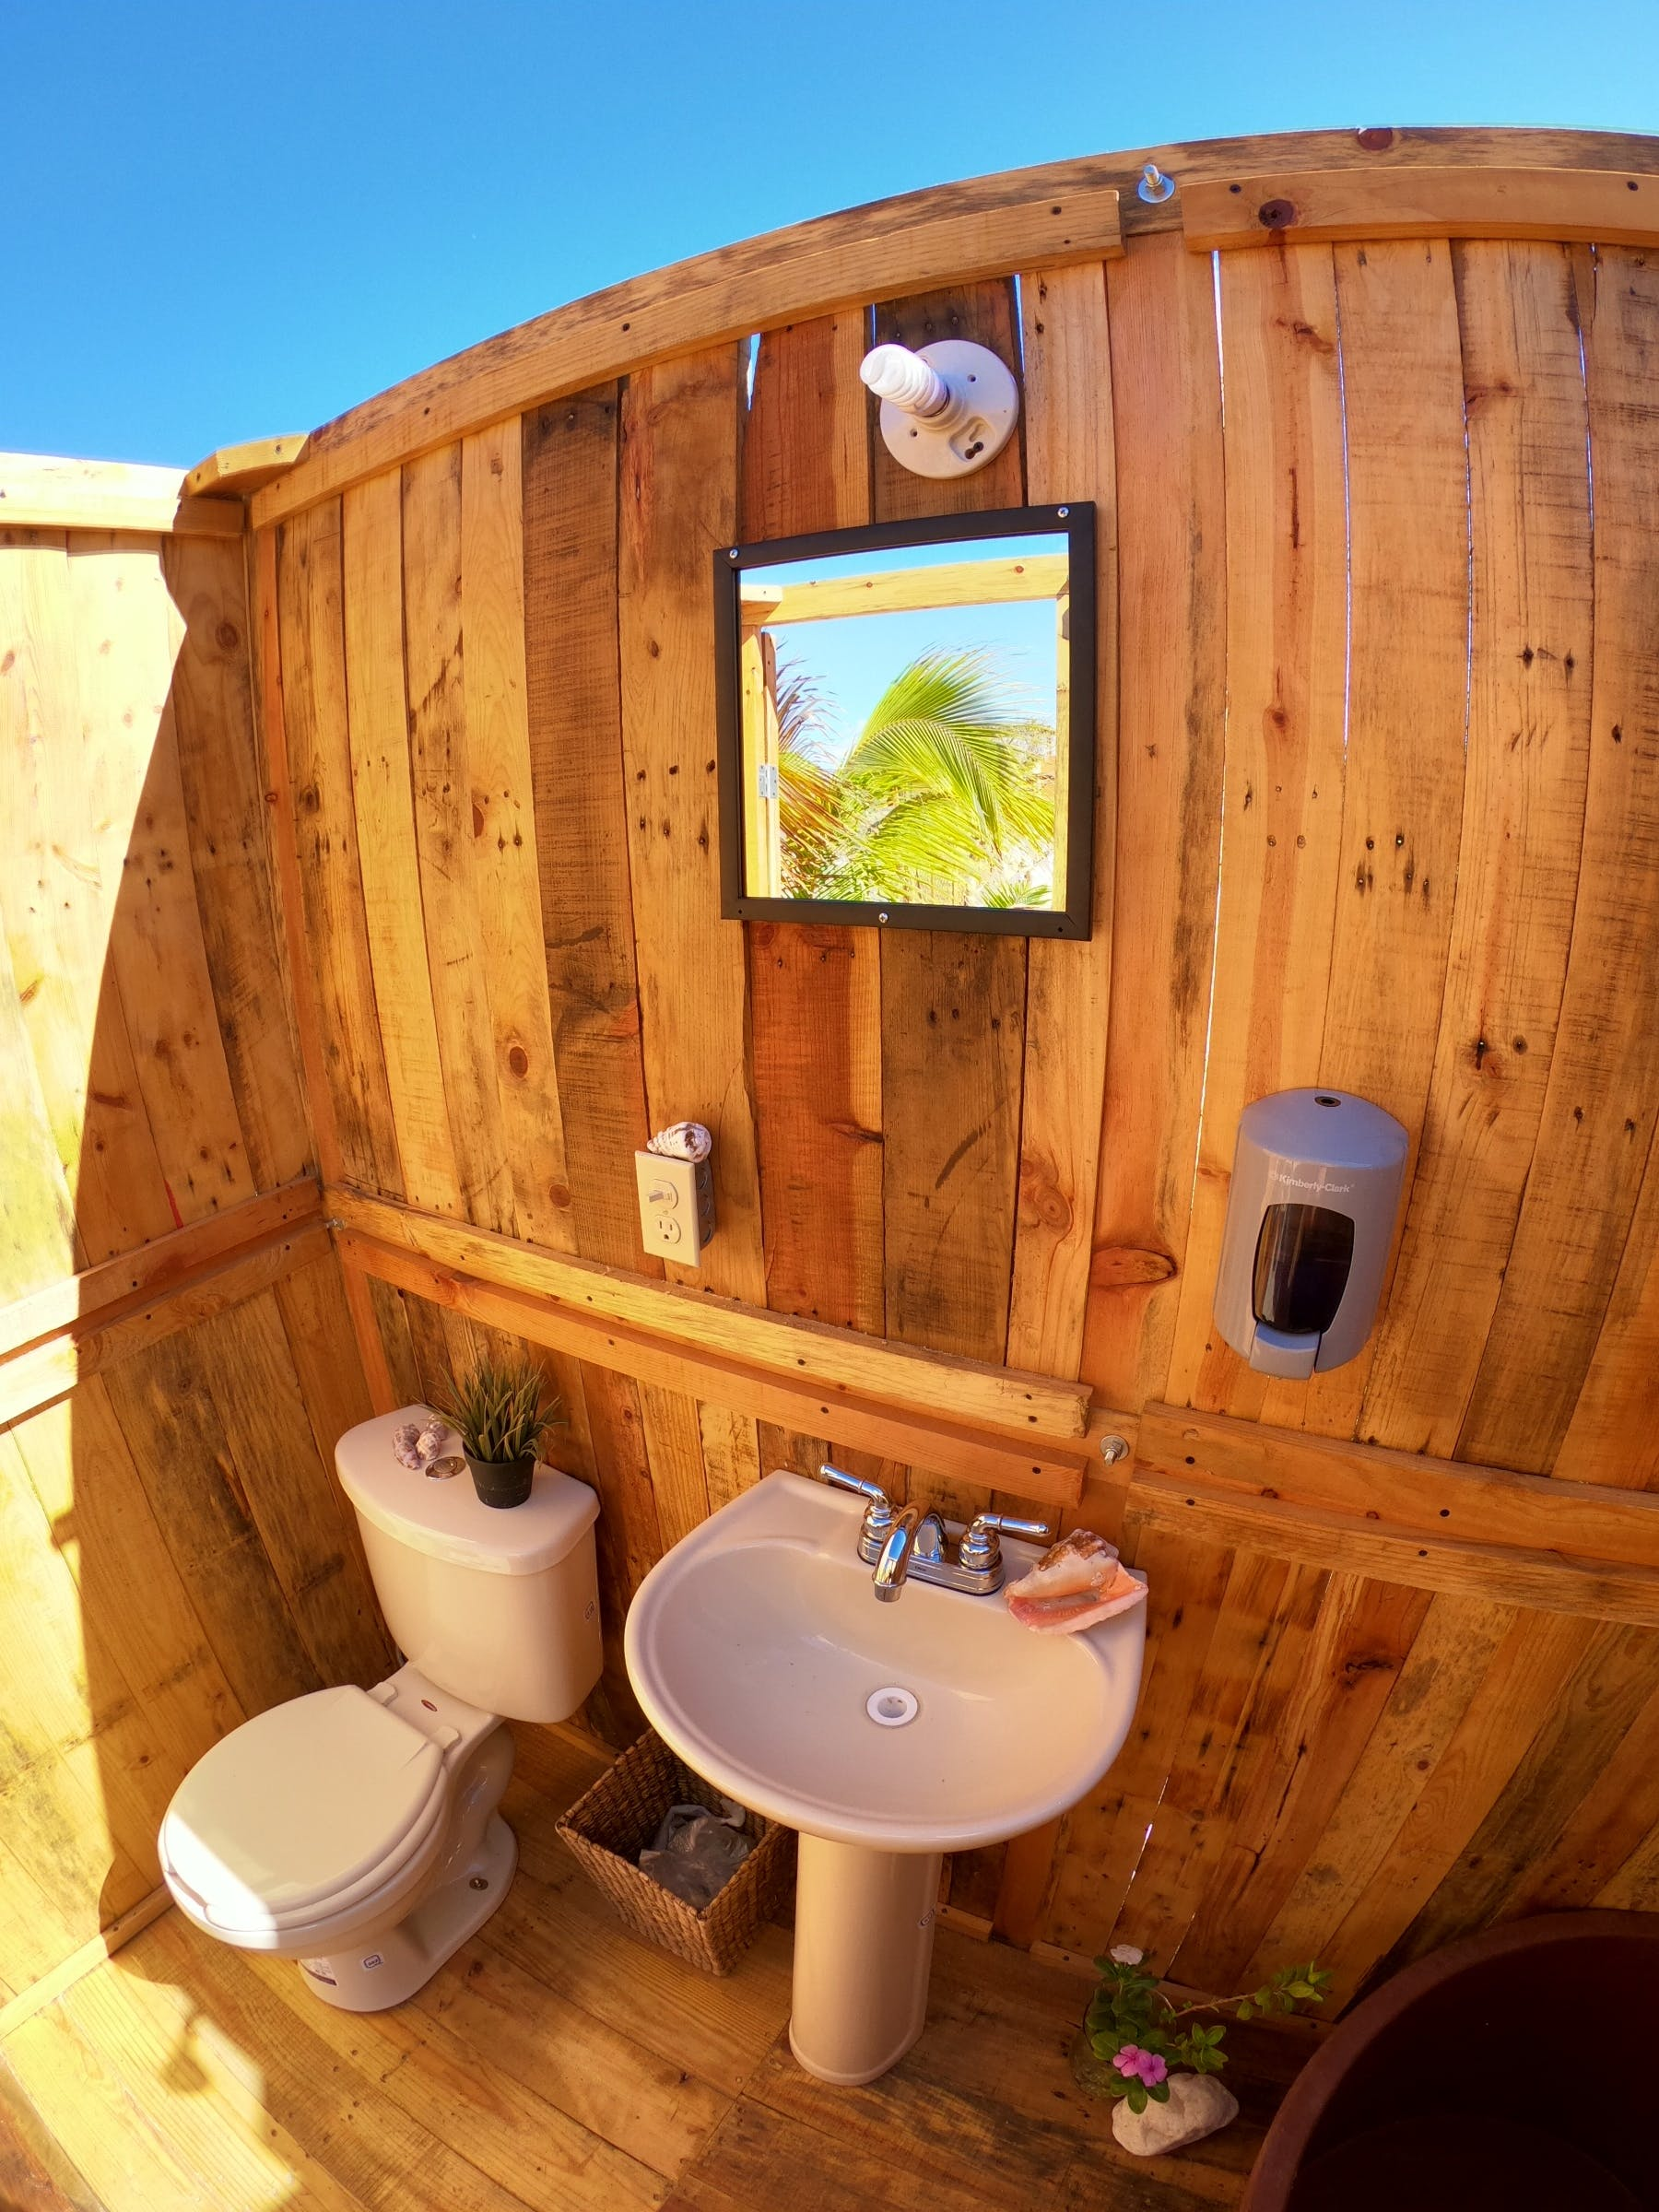 Sky wiev bathroom in Glamping Hotel Chilo Chill